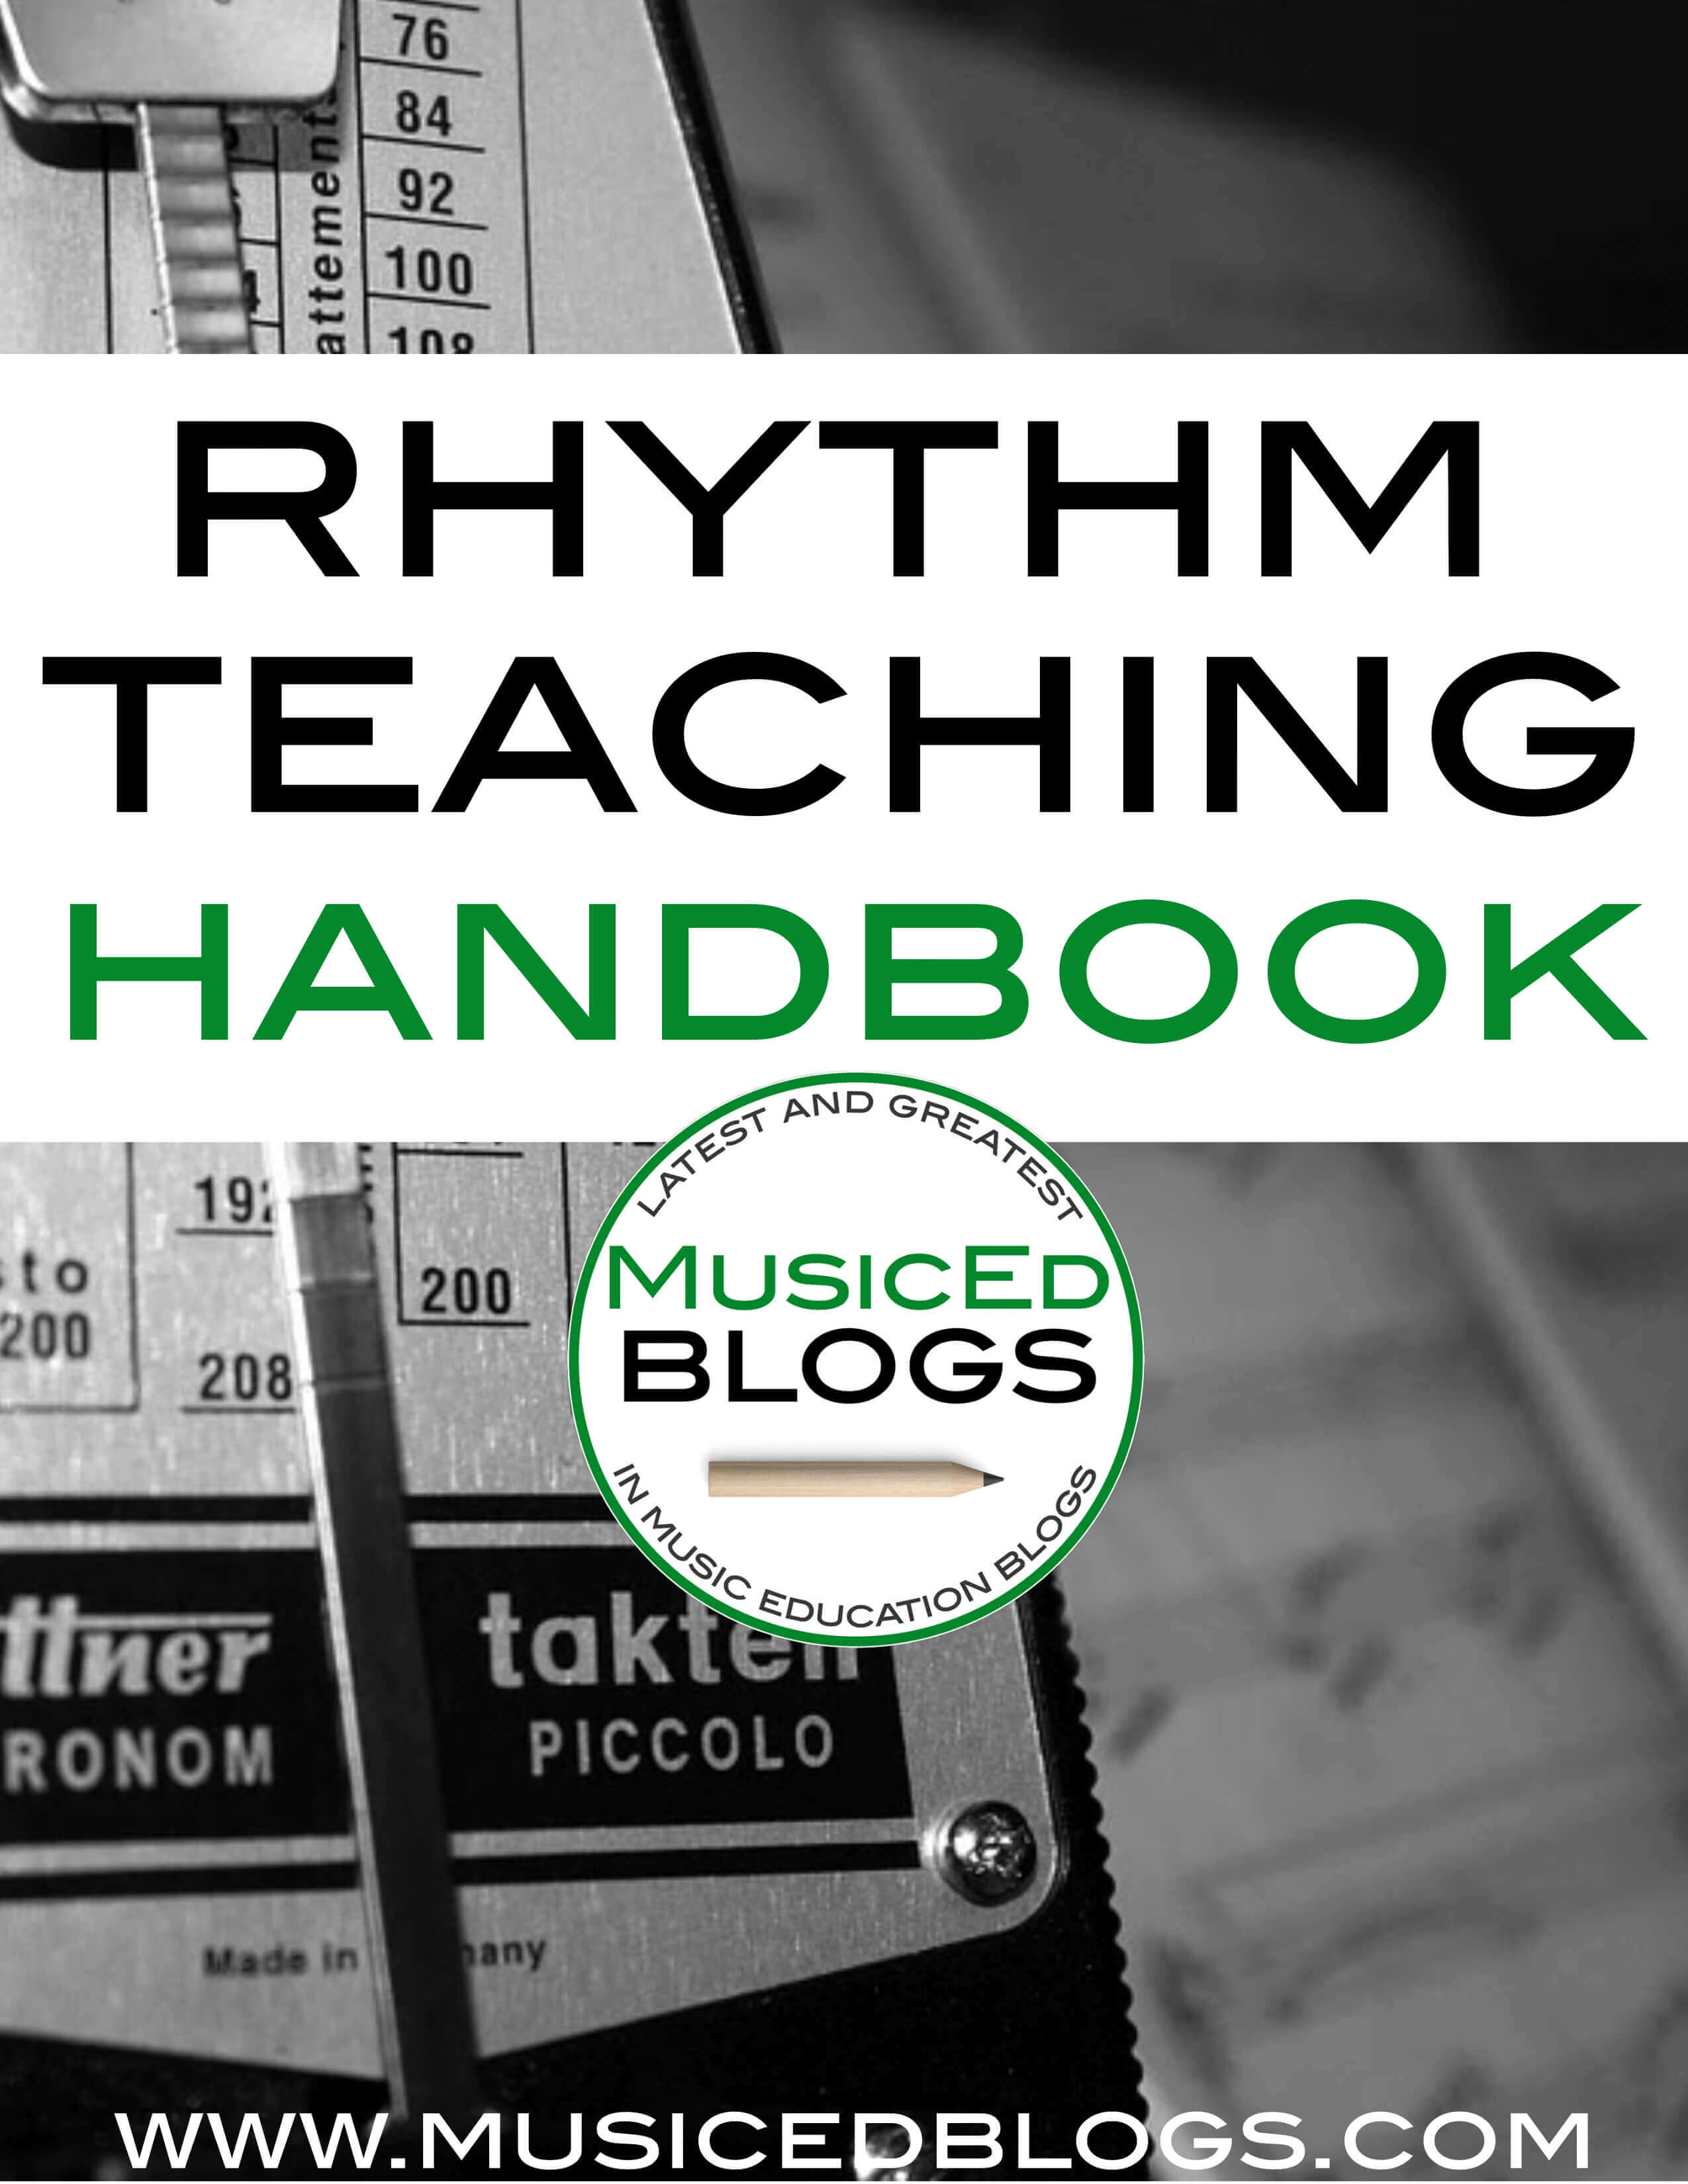 """picture of text that says """"rhythm teaching handbook"""""""